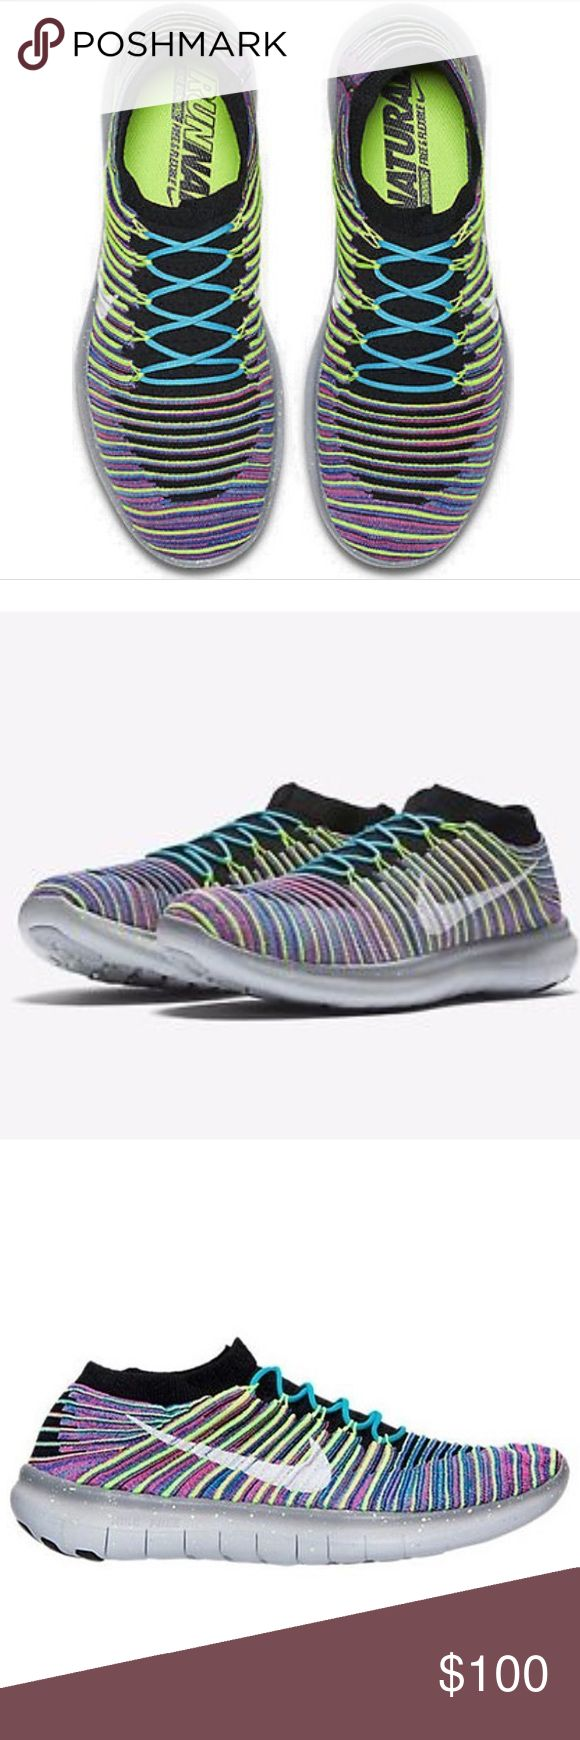 BRAND NEW Mens FreeRn Motion Flyknit Running Shoes Lightweight and breathable running shoes Nike Shoes Athletic Shoes